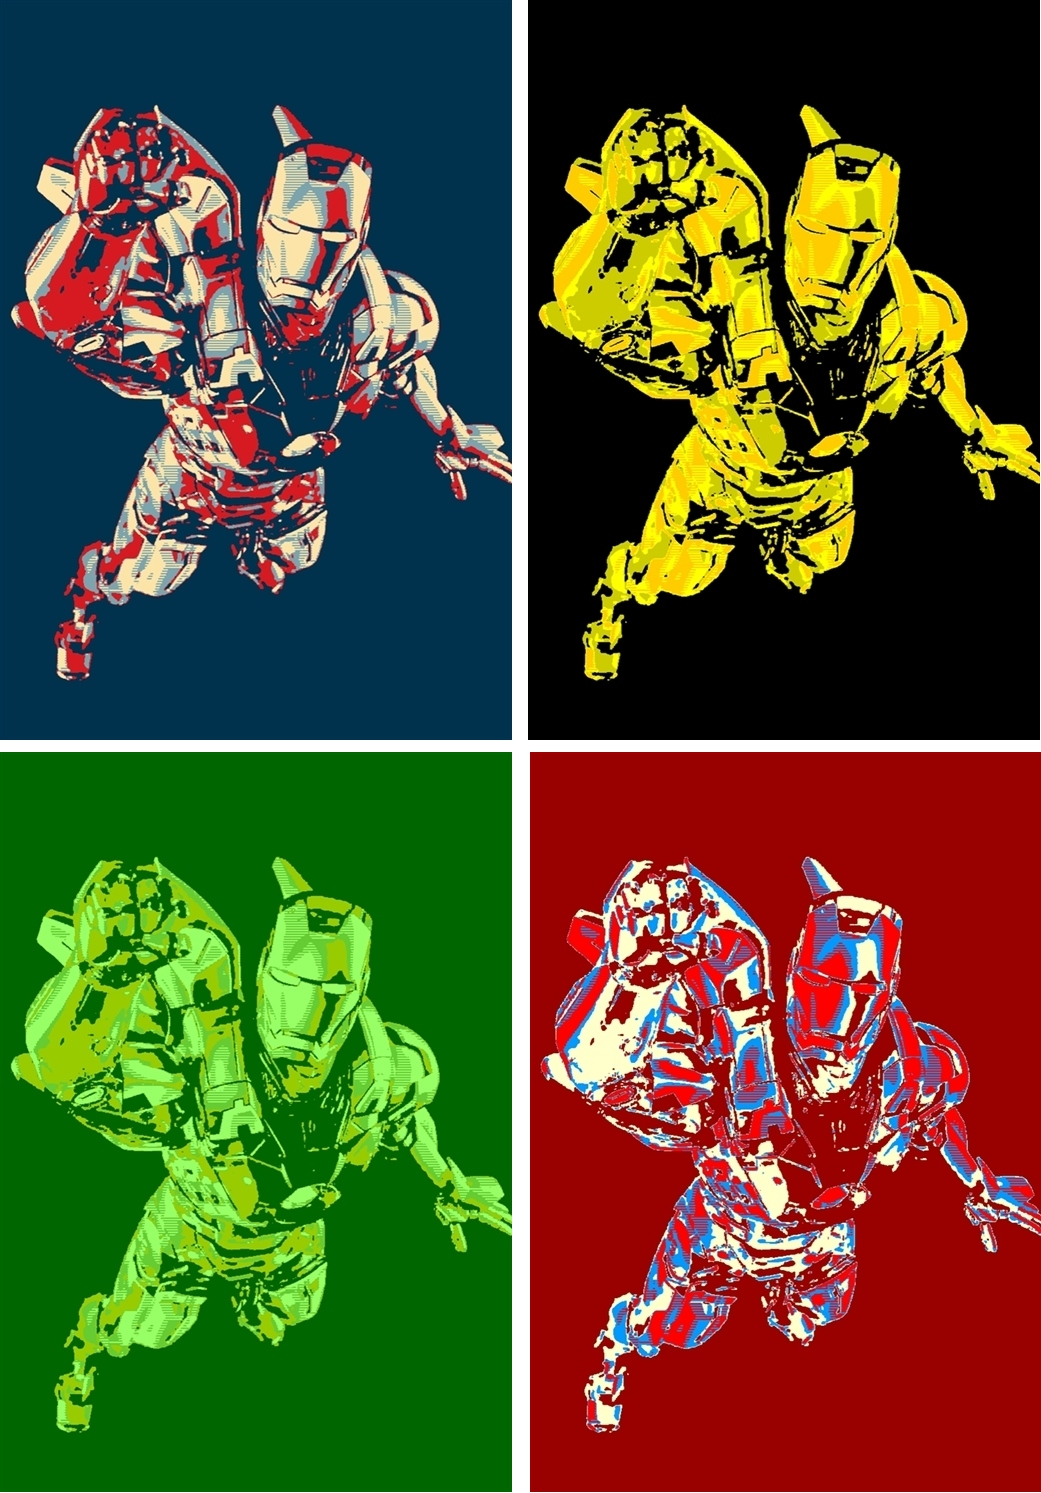 Iron Man Yes We Can Four Panel Pop Art By TheGreatDevin On DeviantArt